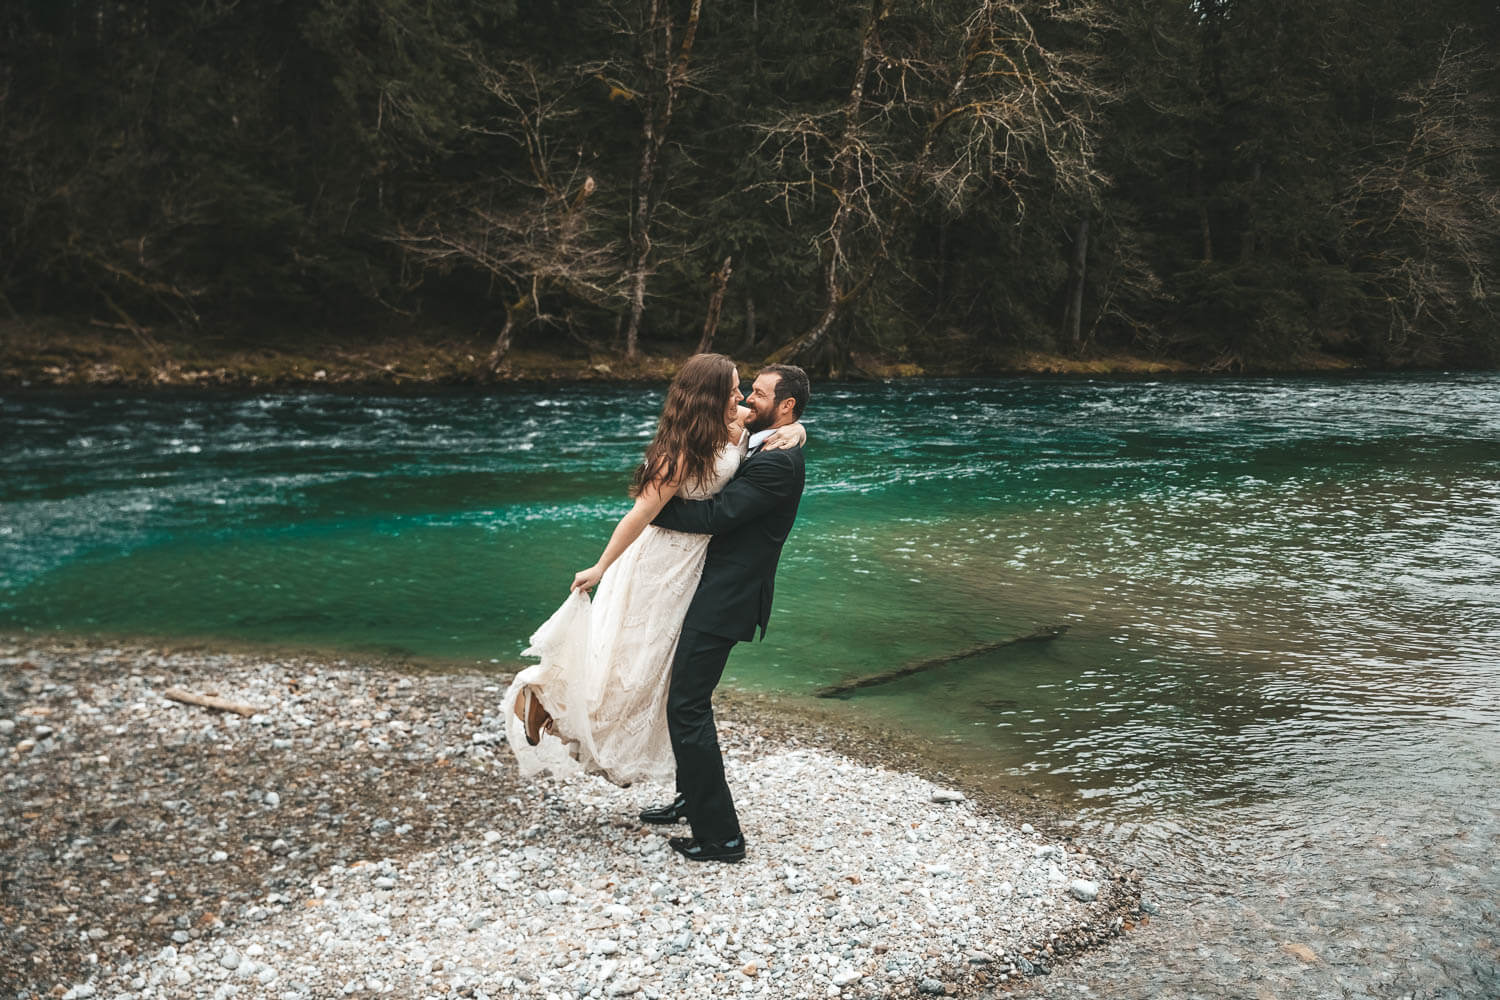 experience your wedding day - If tall trees, lush forests, and grand waterfalls call your name consider getting hitched in a forest! Oregon has some of the best, but so does New England. As the trees tower over you, let nature restore your energy.